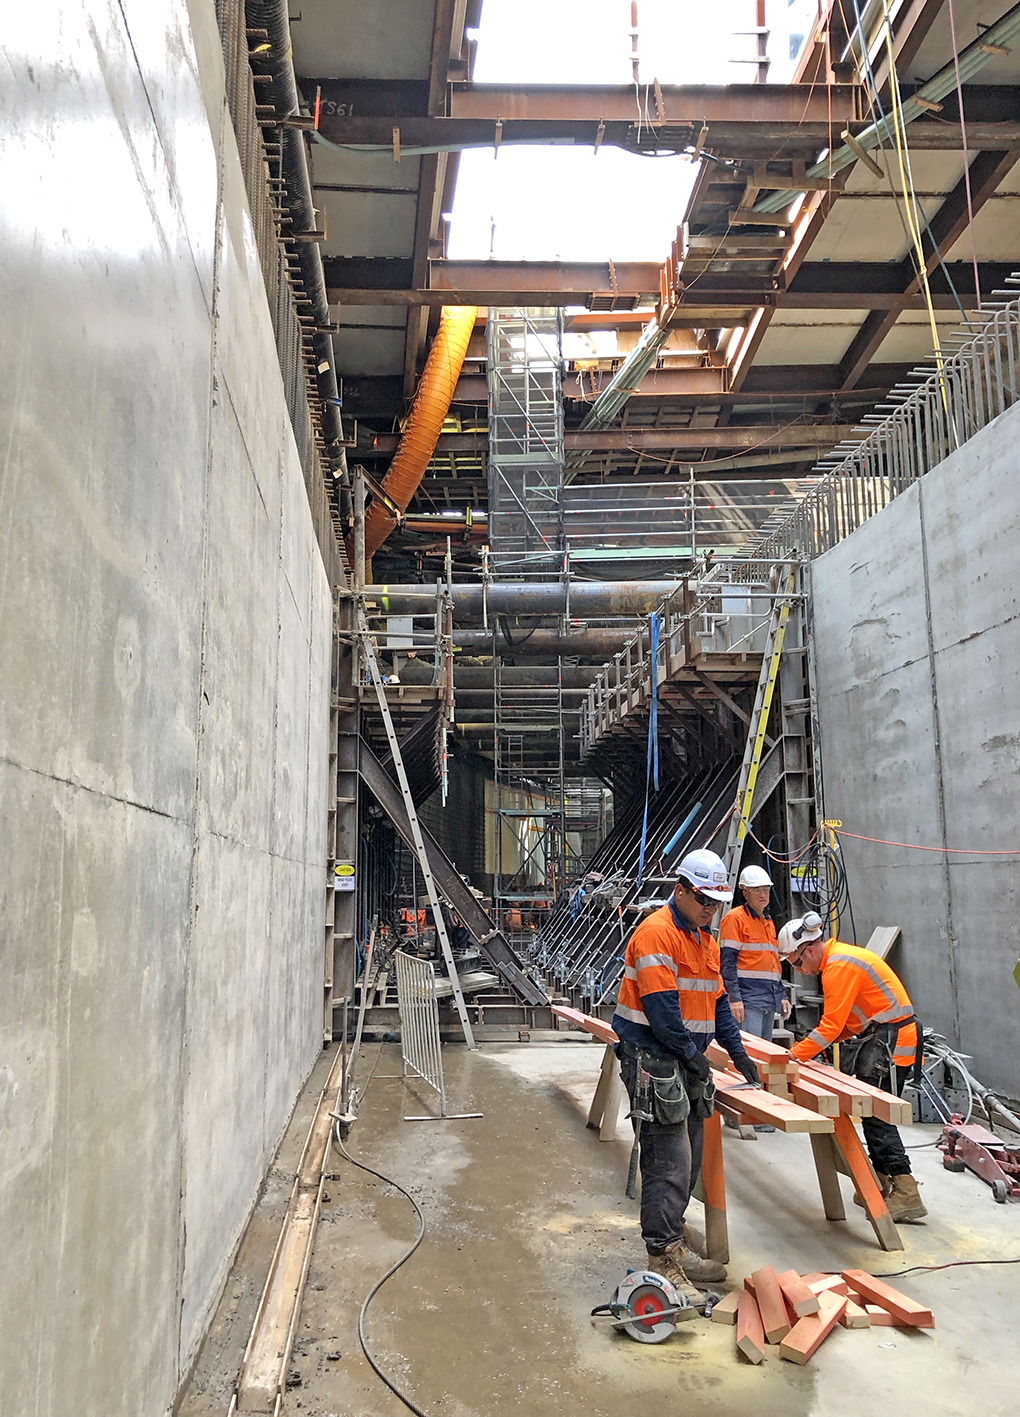 Albert St trench 7 March 2019